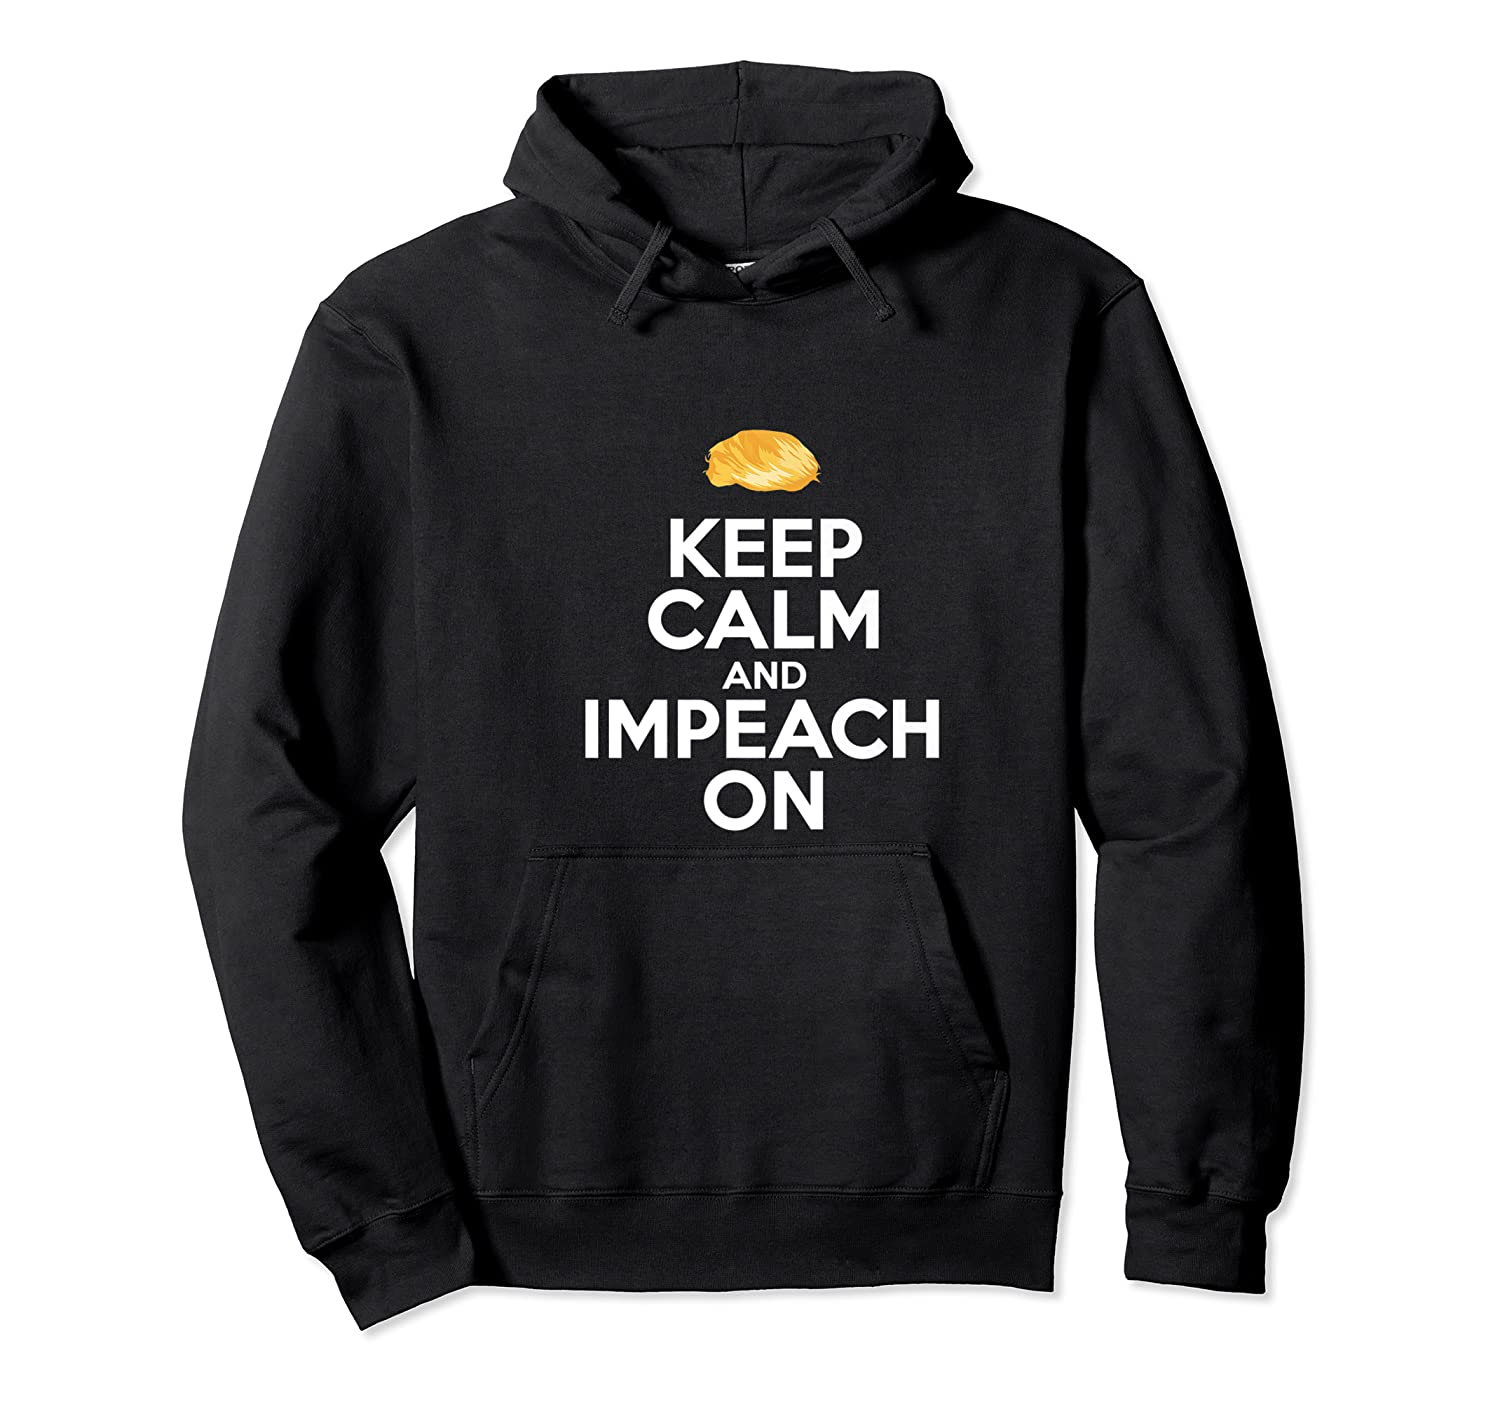 Keep Calm And Impeach On T Shirt Anti Trump Funny 86 45 Unisex Pullover Hoodie